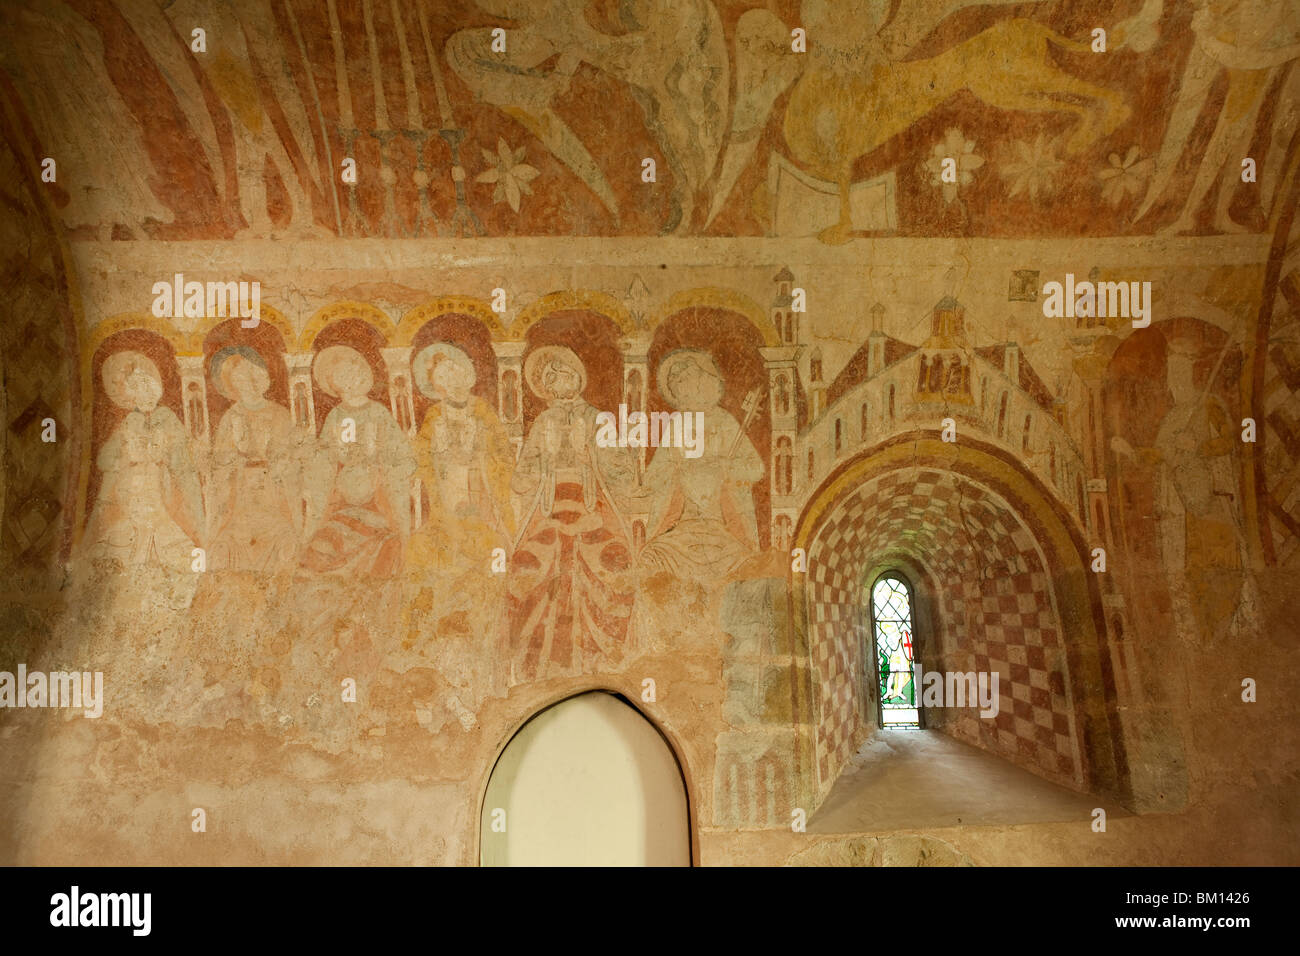 UK, England, Herefordshire, Kempley, St Mary's church medieval wall paintings of apostles sitting in judgement Stock Photo